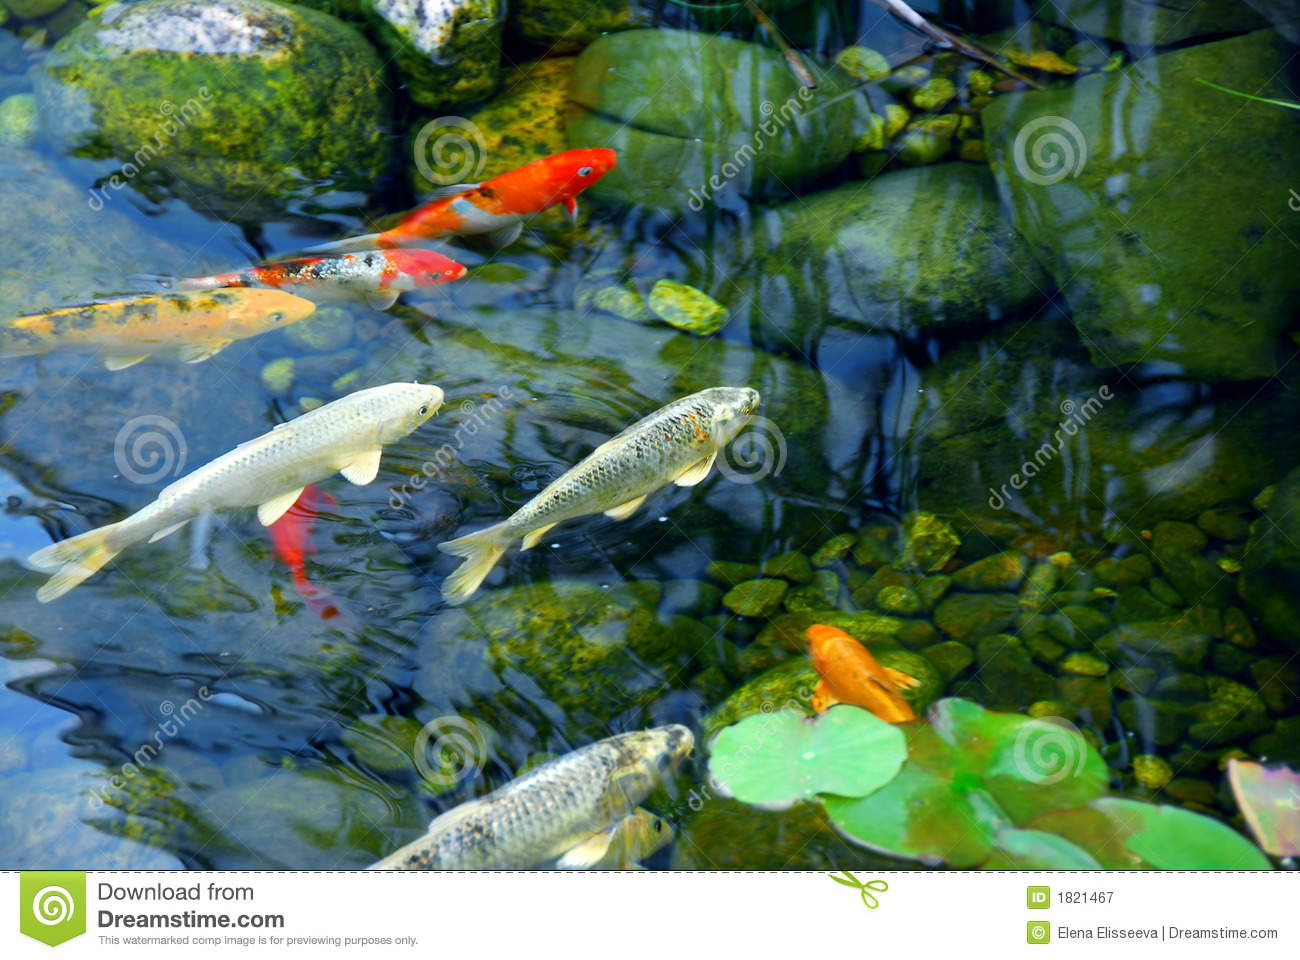 Koi pond stock image image of asia colorful plant for Freshwater koi fish